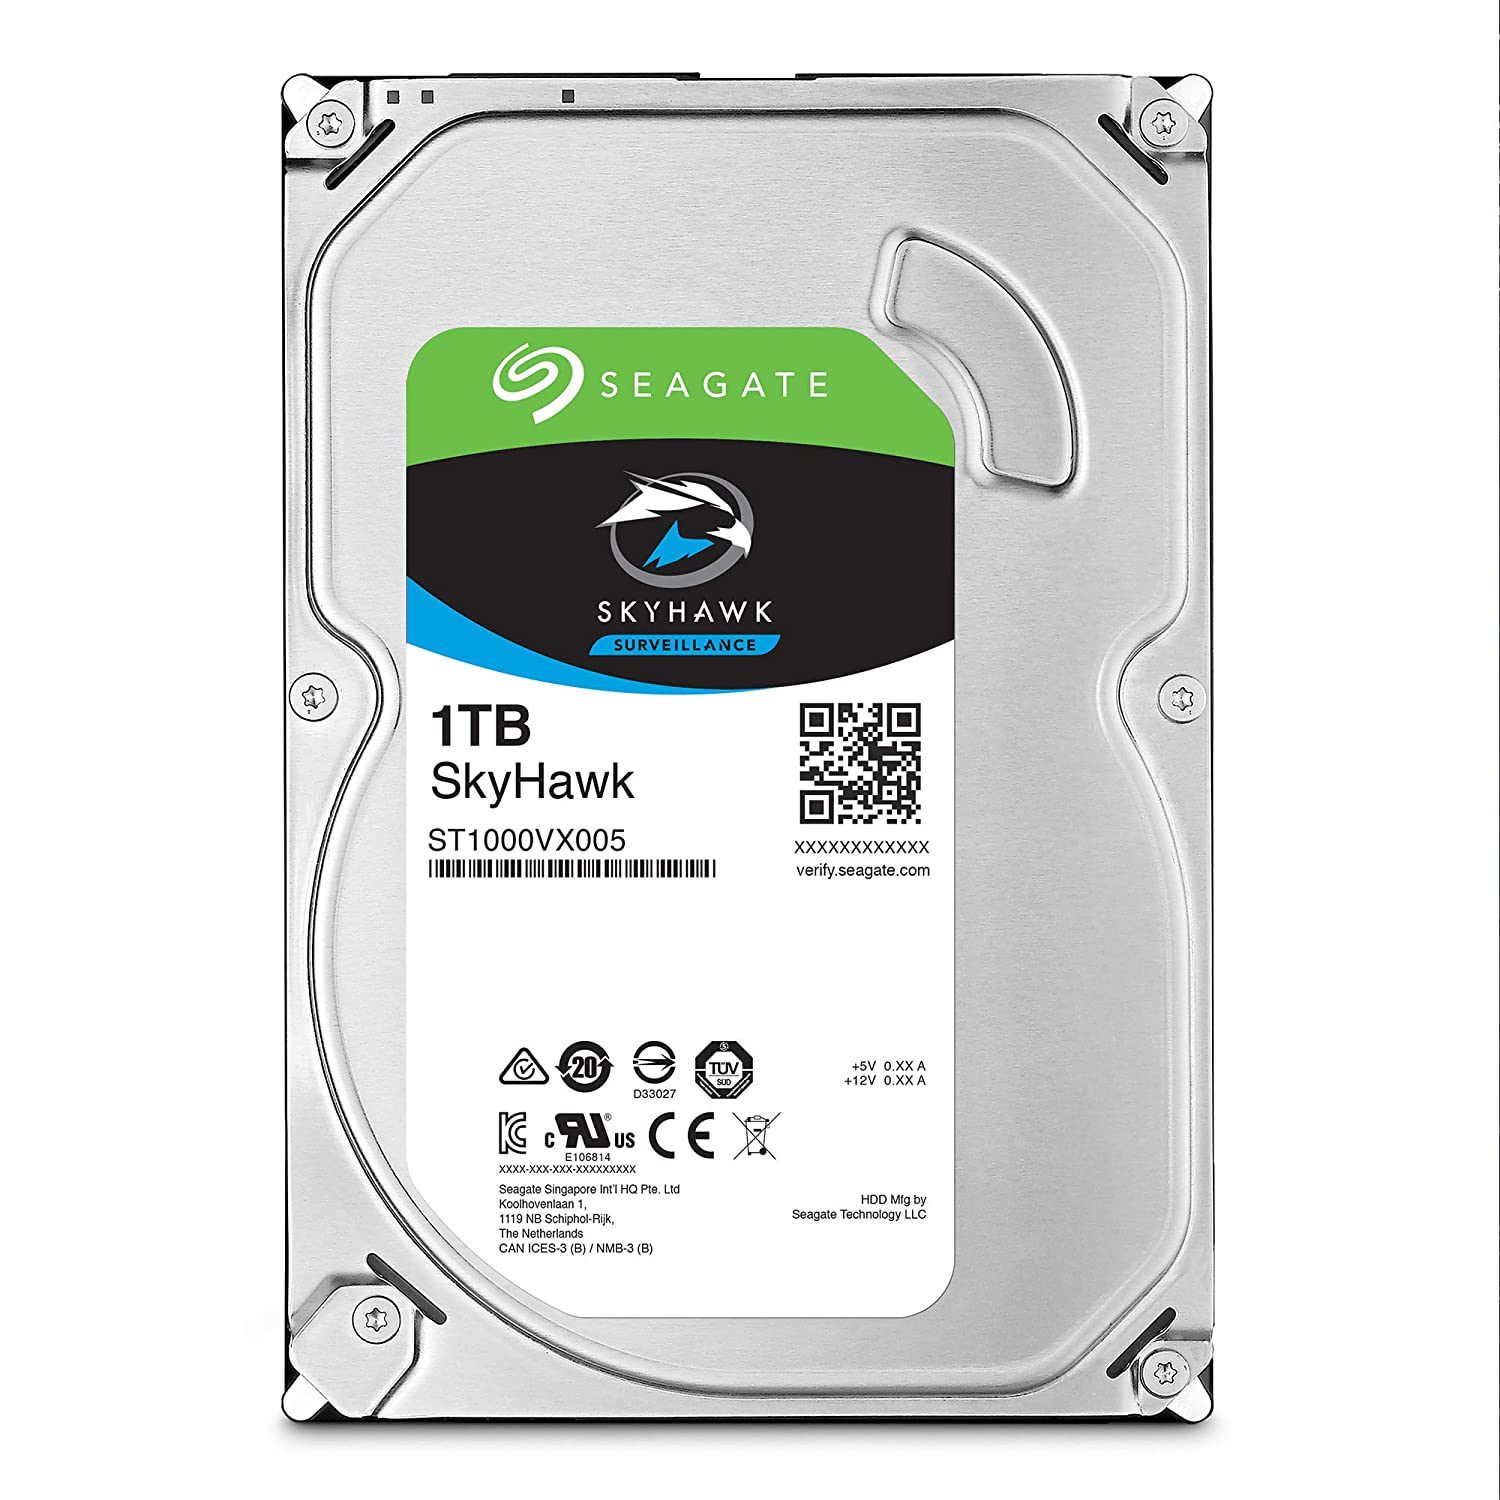 Seagate Skyhawk 1TB Surveillance Internal Hard Drive HDD – 3.5 Inch SATA 6Gb/s 64MB Cache for DVR NVR Security Camera System with Drive Health Management – Frustration Free Packaging (ST1000VX005)